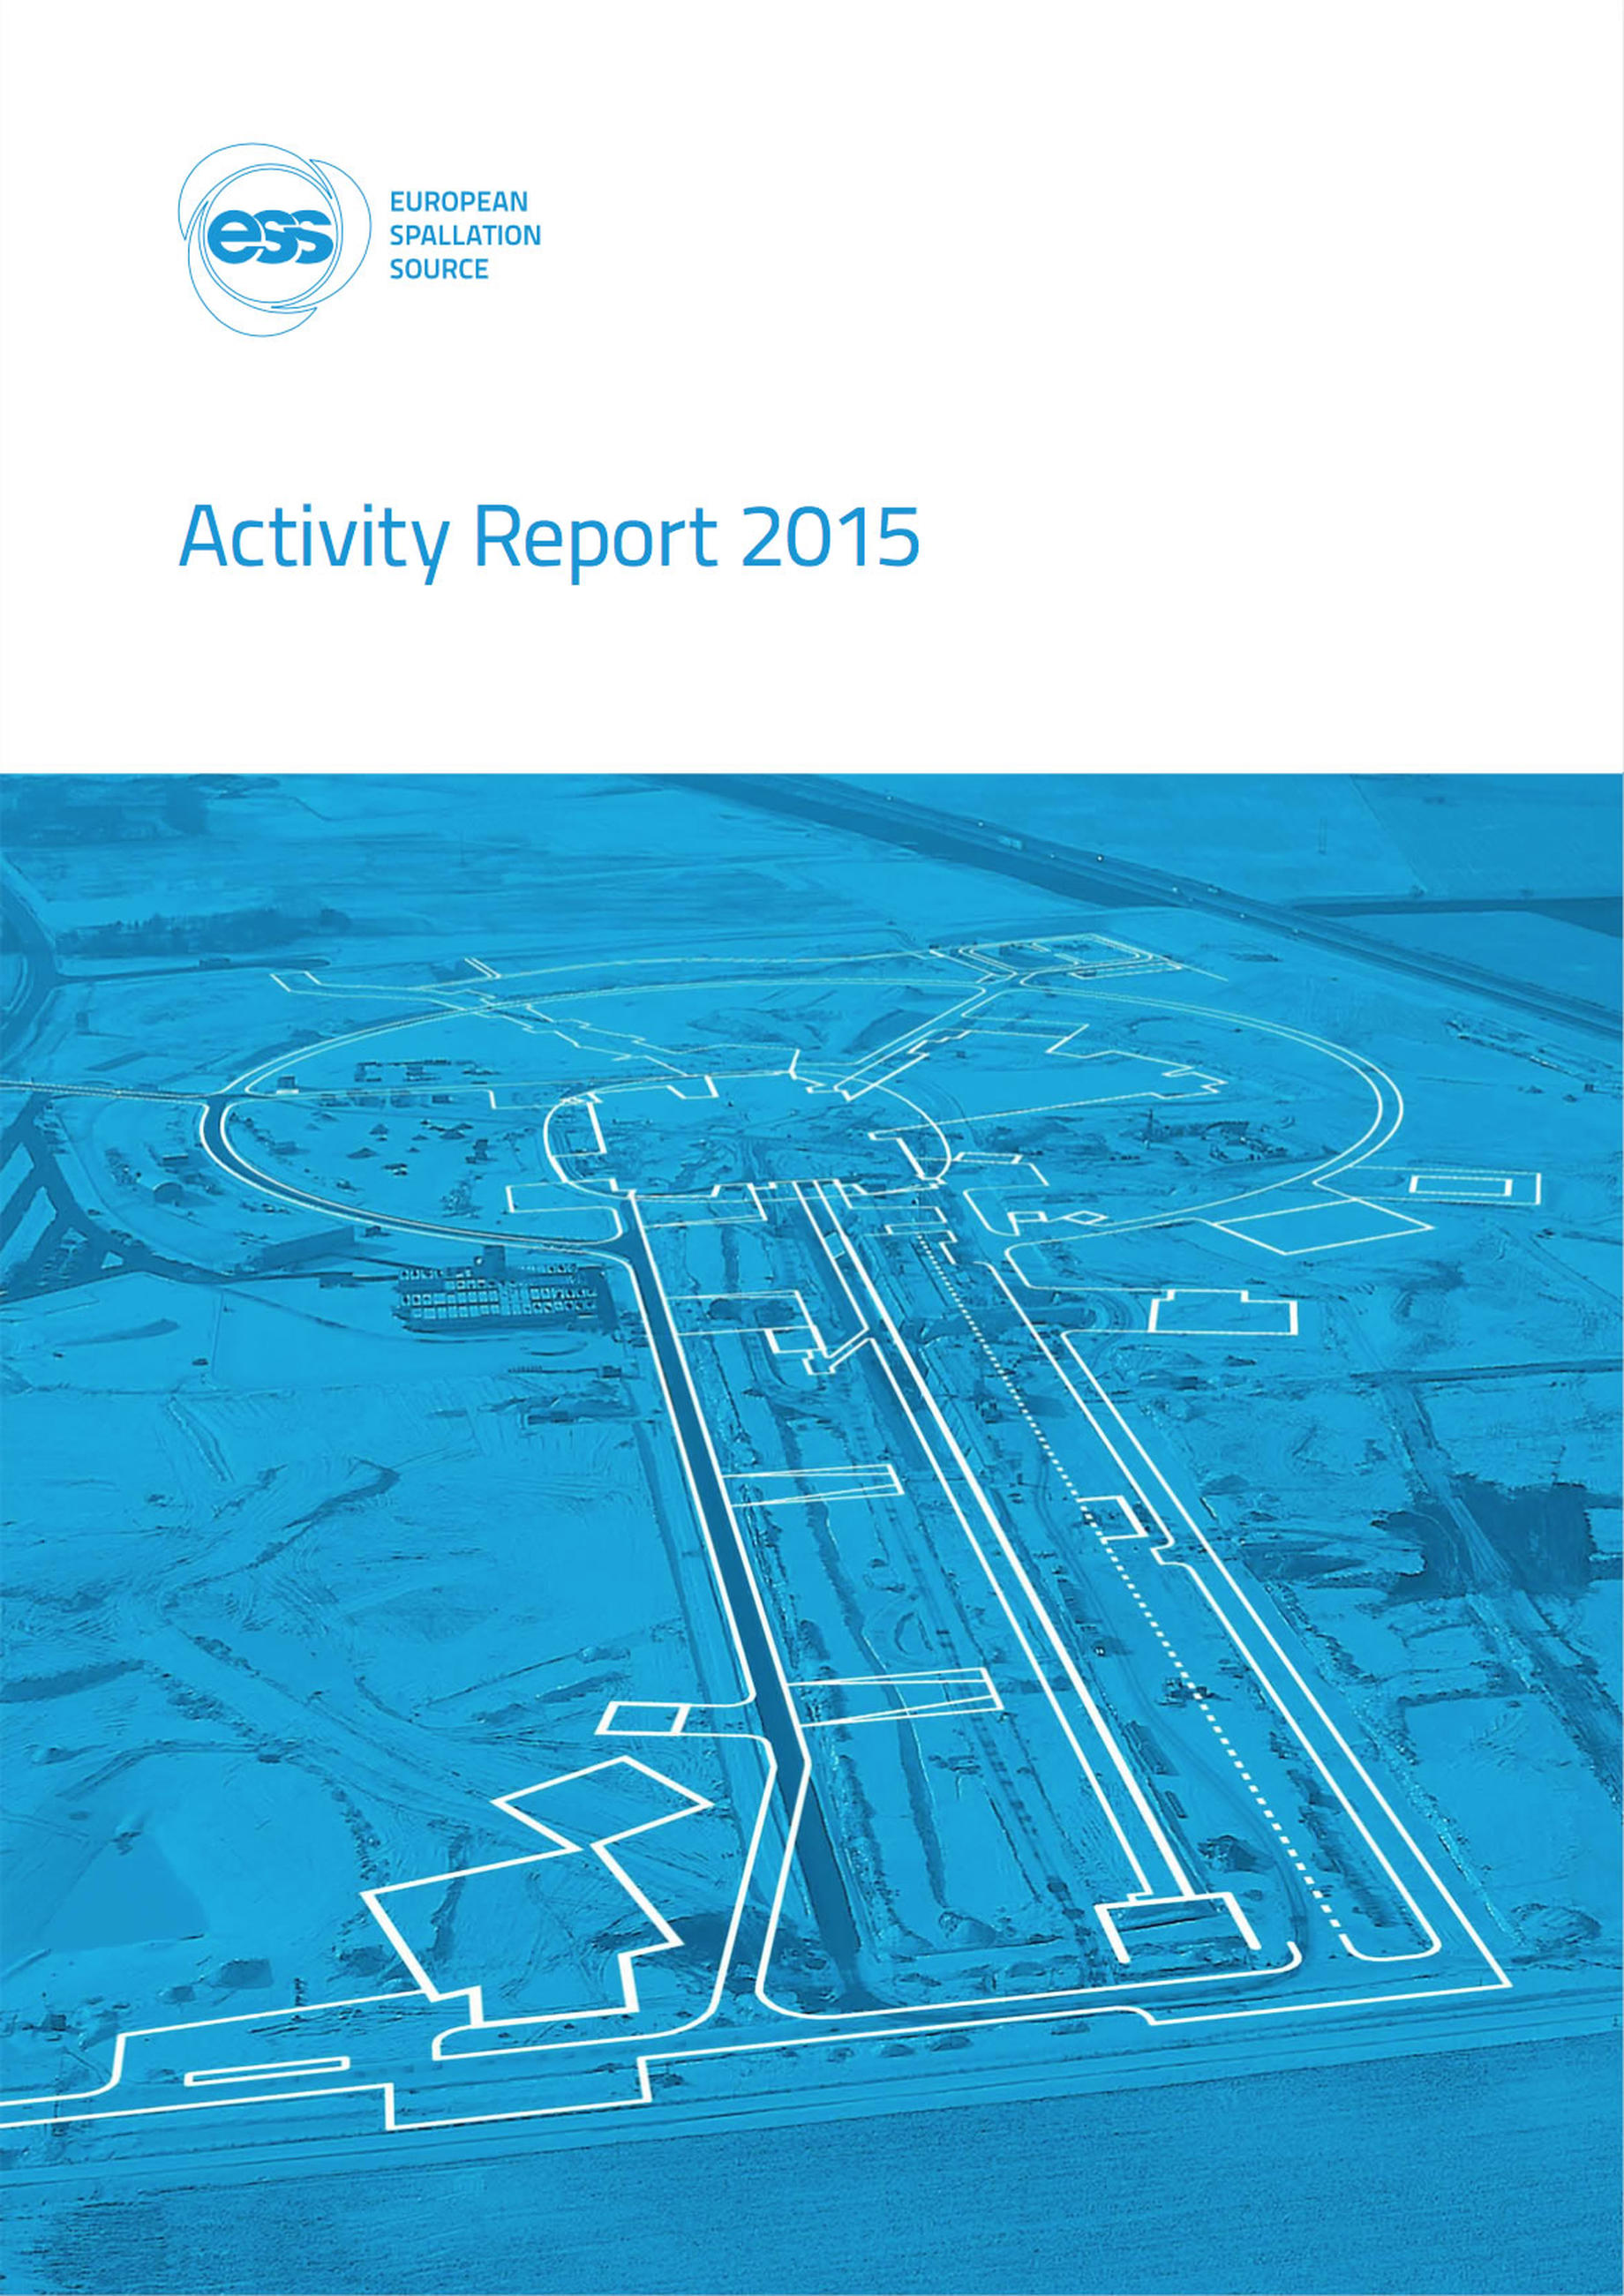 ActivityReport2014_2015_cover.jpg